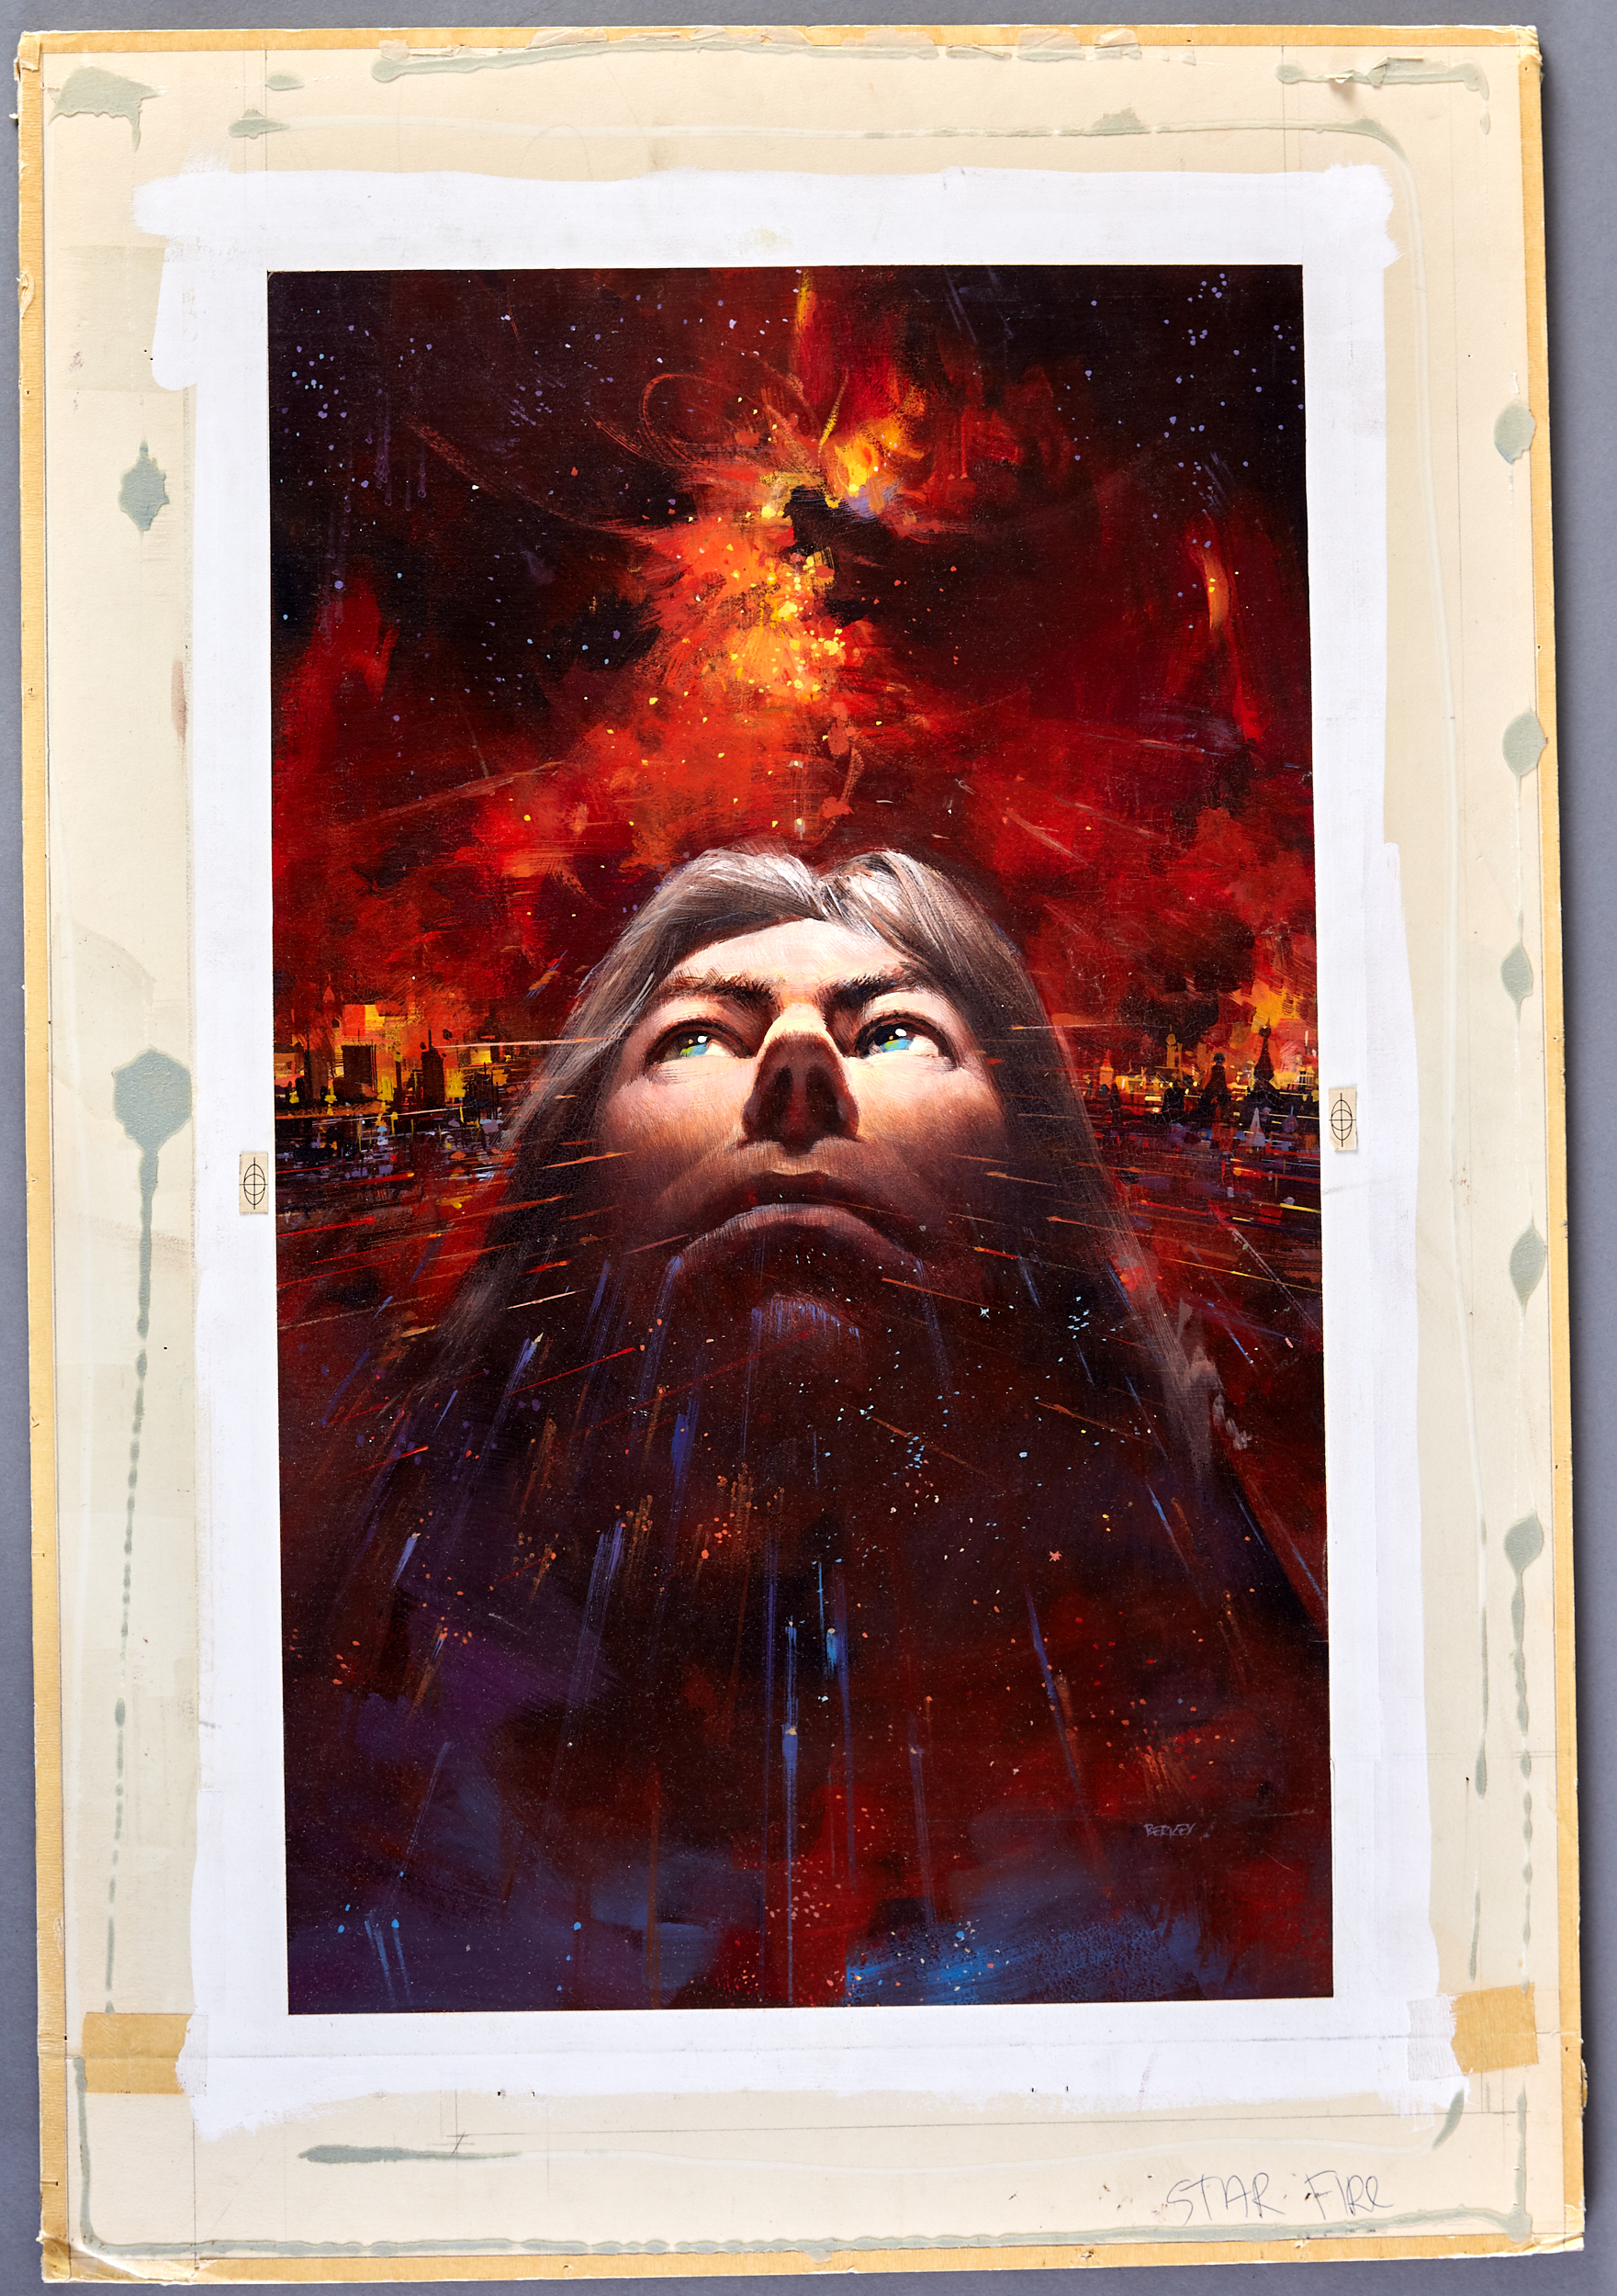 Lot 37 - John Berkey Star Fire Book Cover Illustration Painting